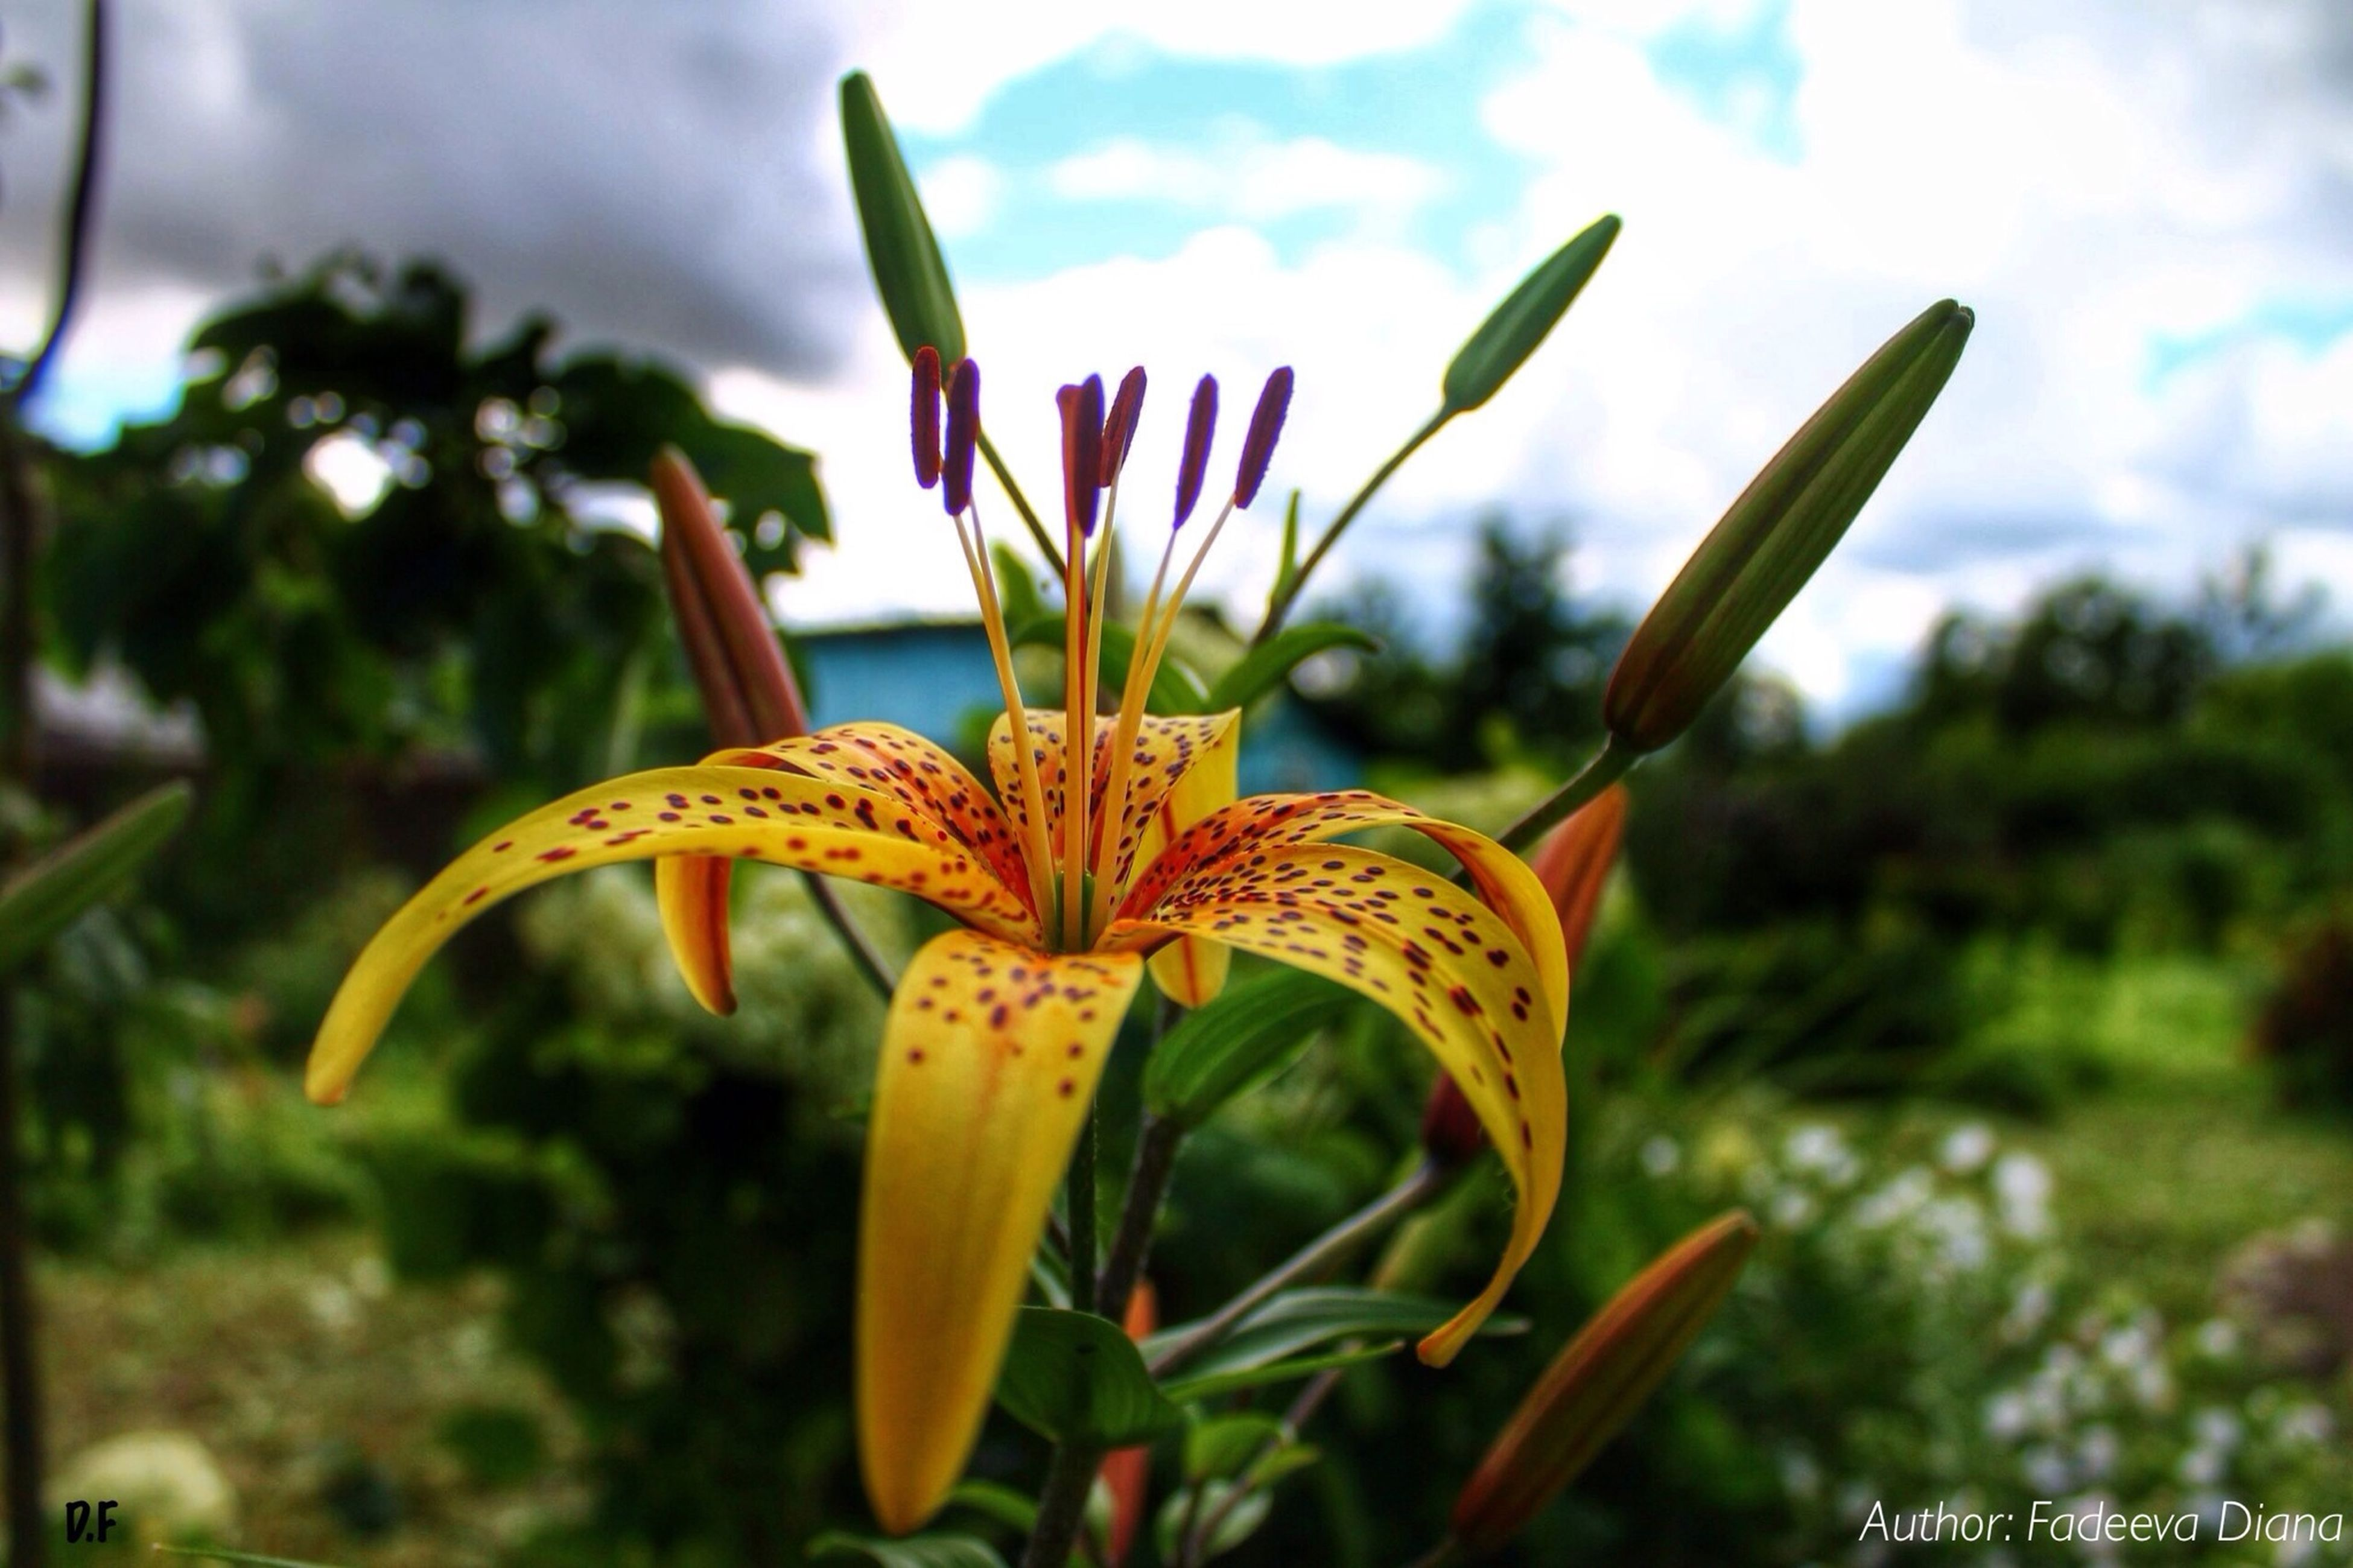 growth, focus on foreground, close-up, flower, plant, freshness, fragility, beauty in nature, nature, sky, green color, field, leaf, yellow, stem, bud, petal, day, selective focus, flower head